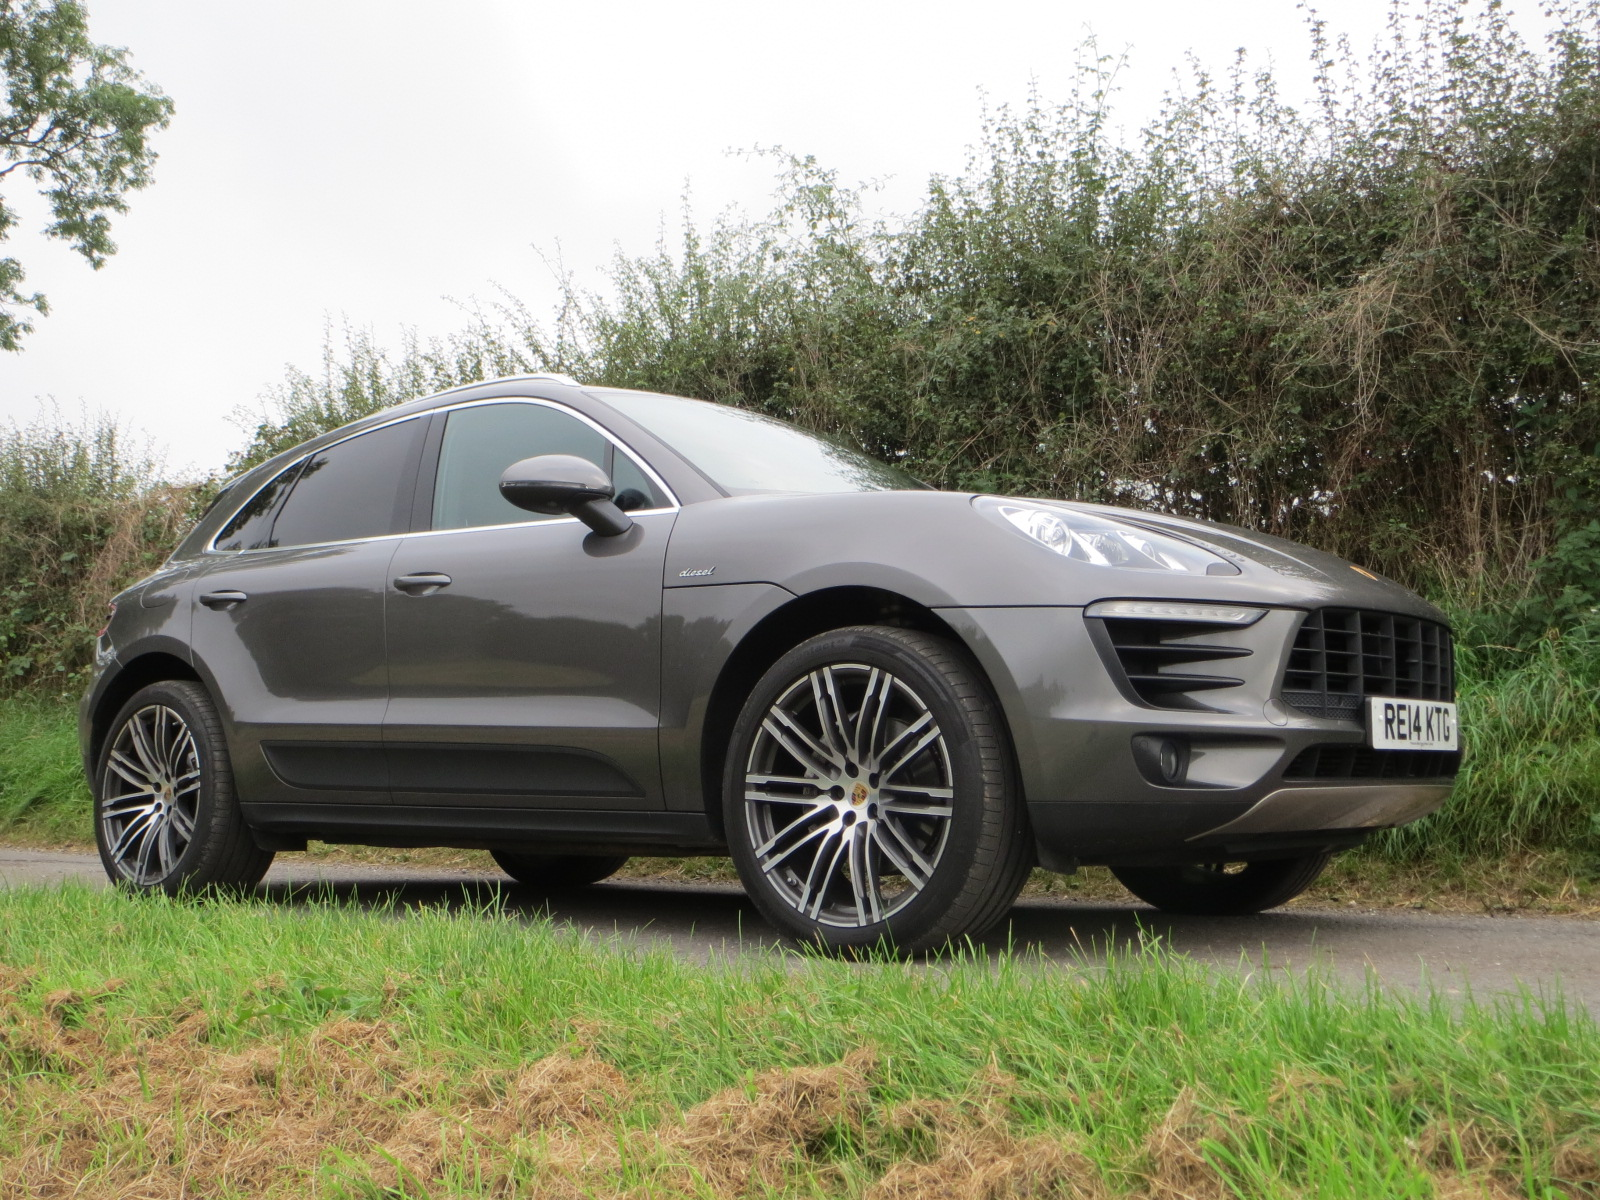 Porsche Macan S Diesel Road Test Report And Review